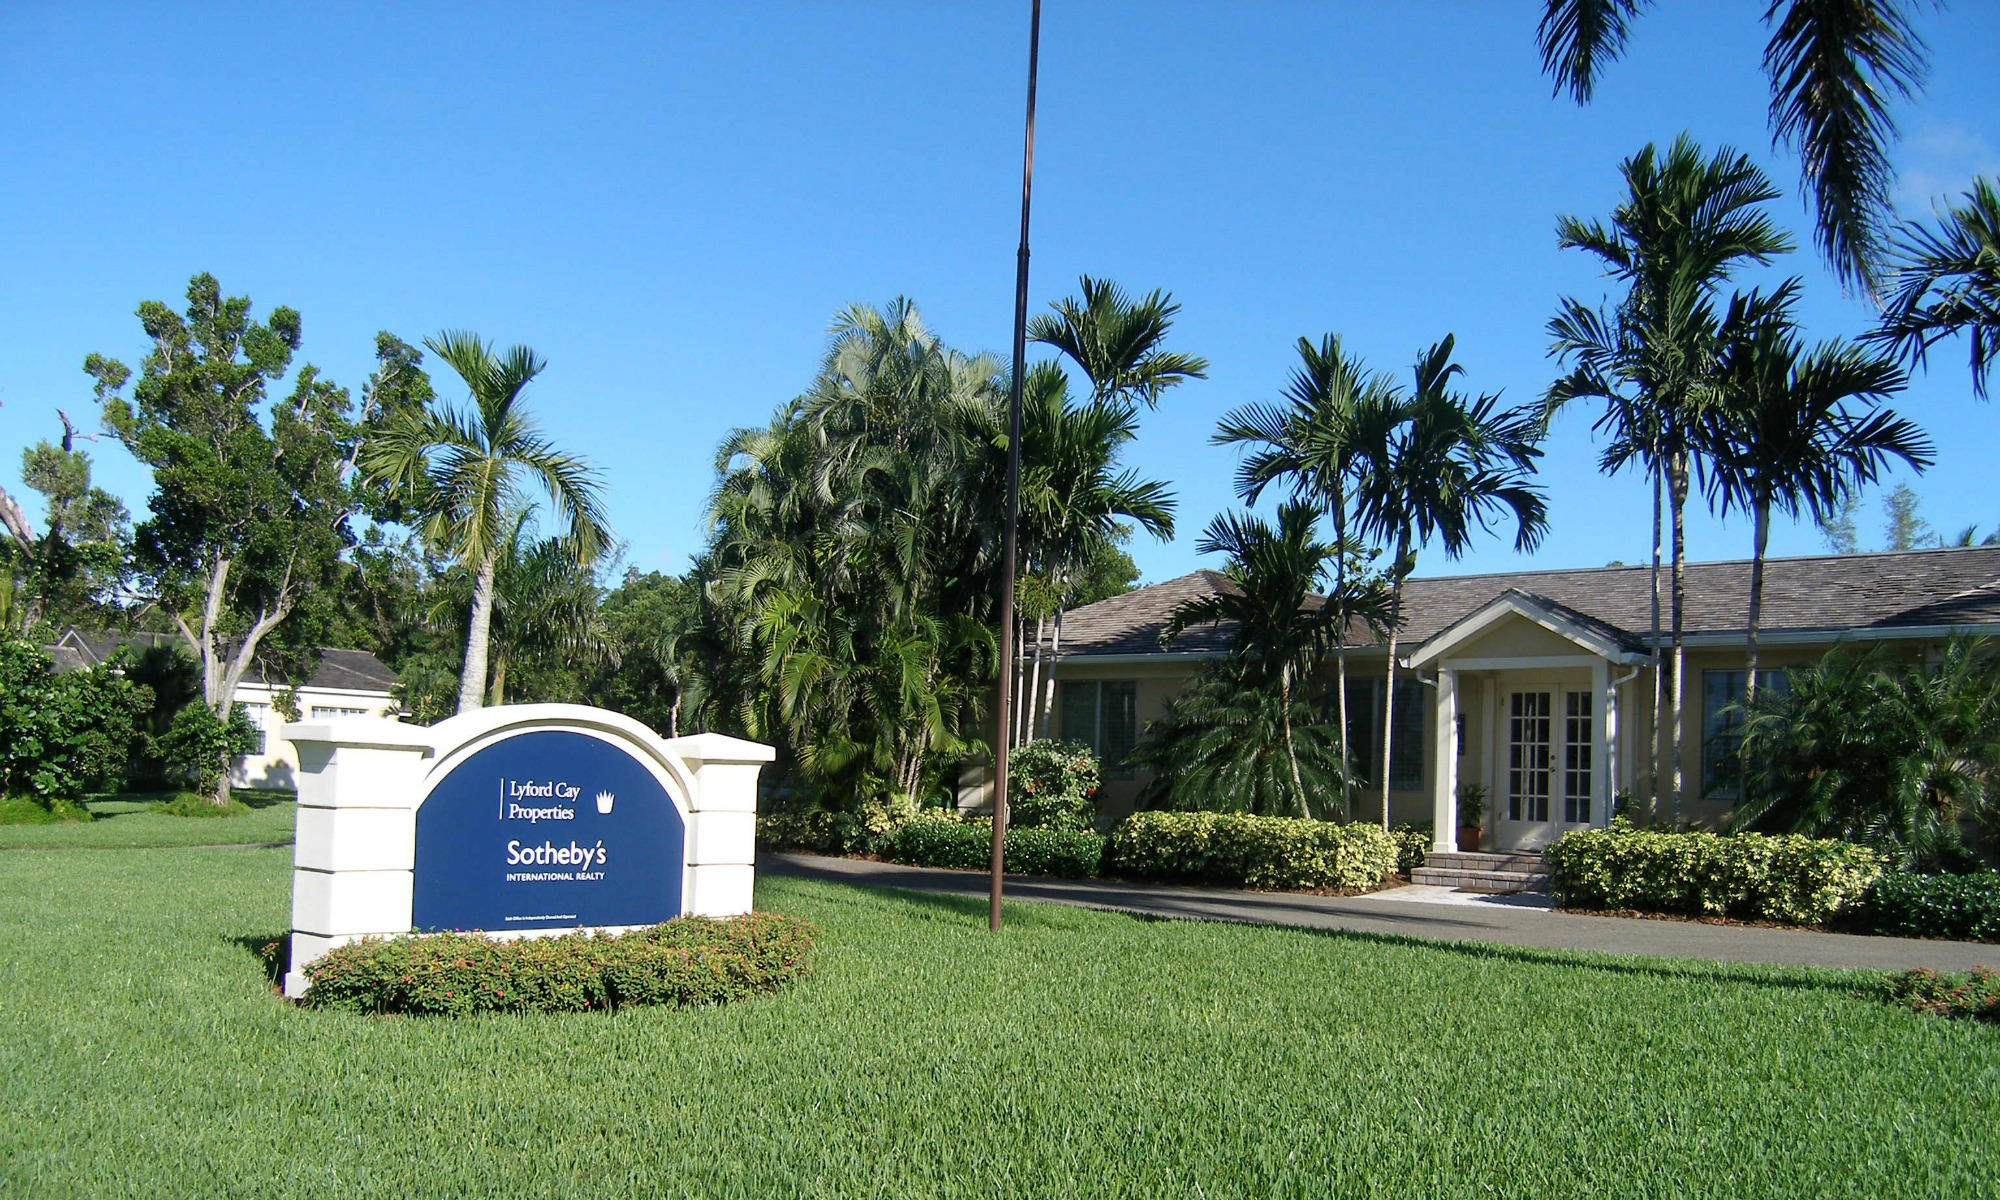 Lyford Cay Sotheby's International Realty